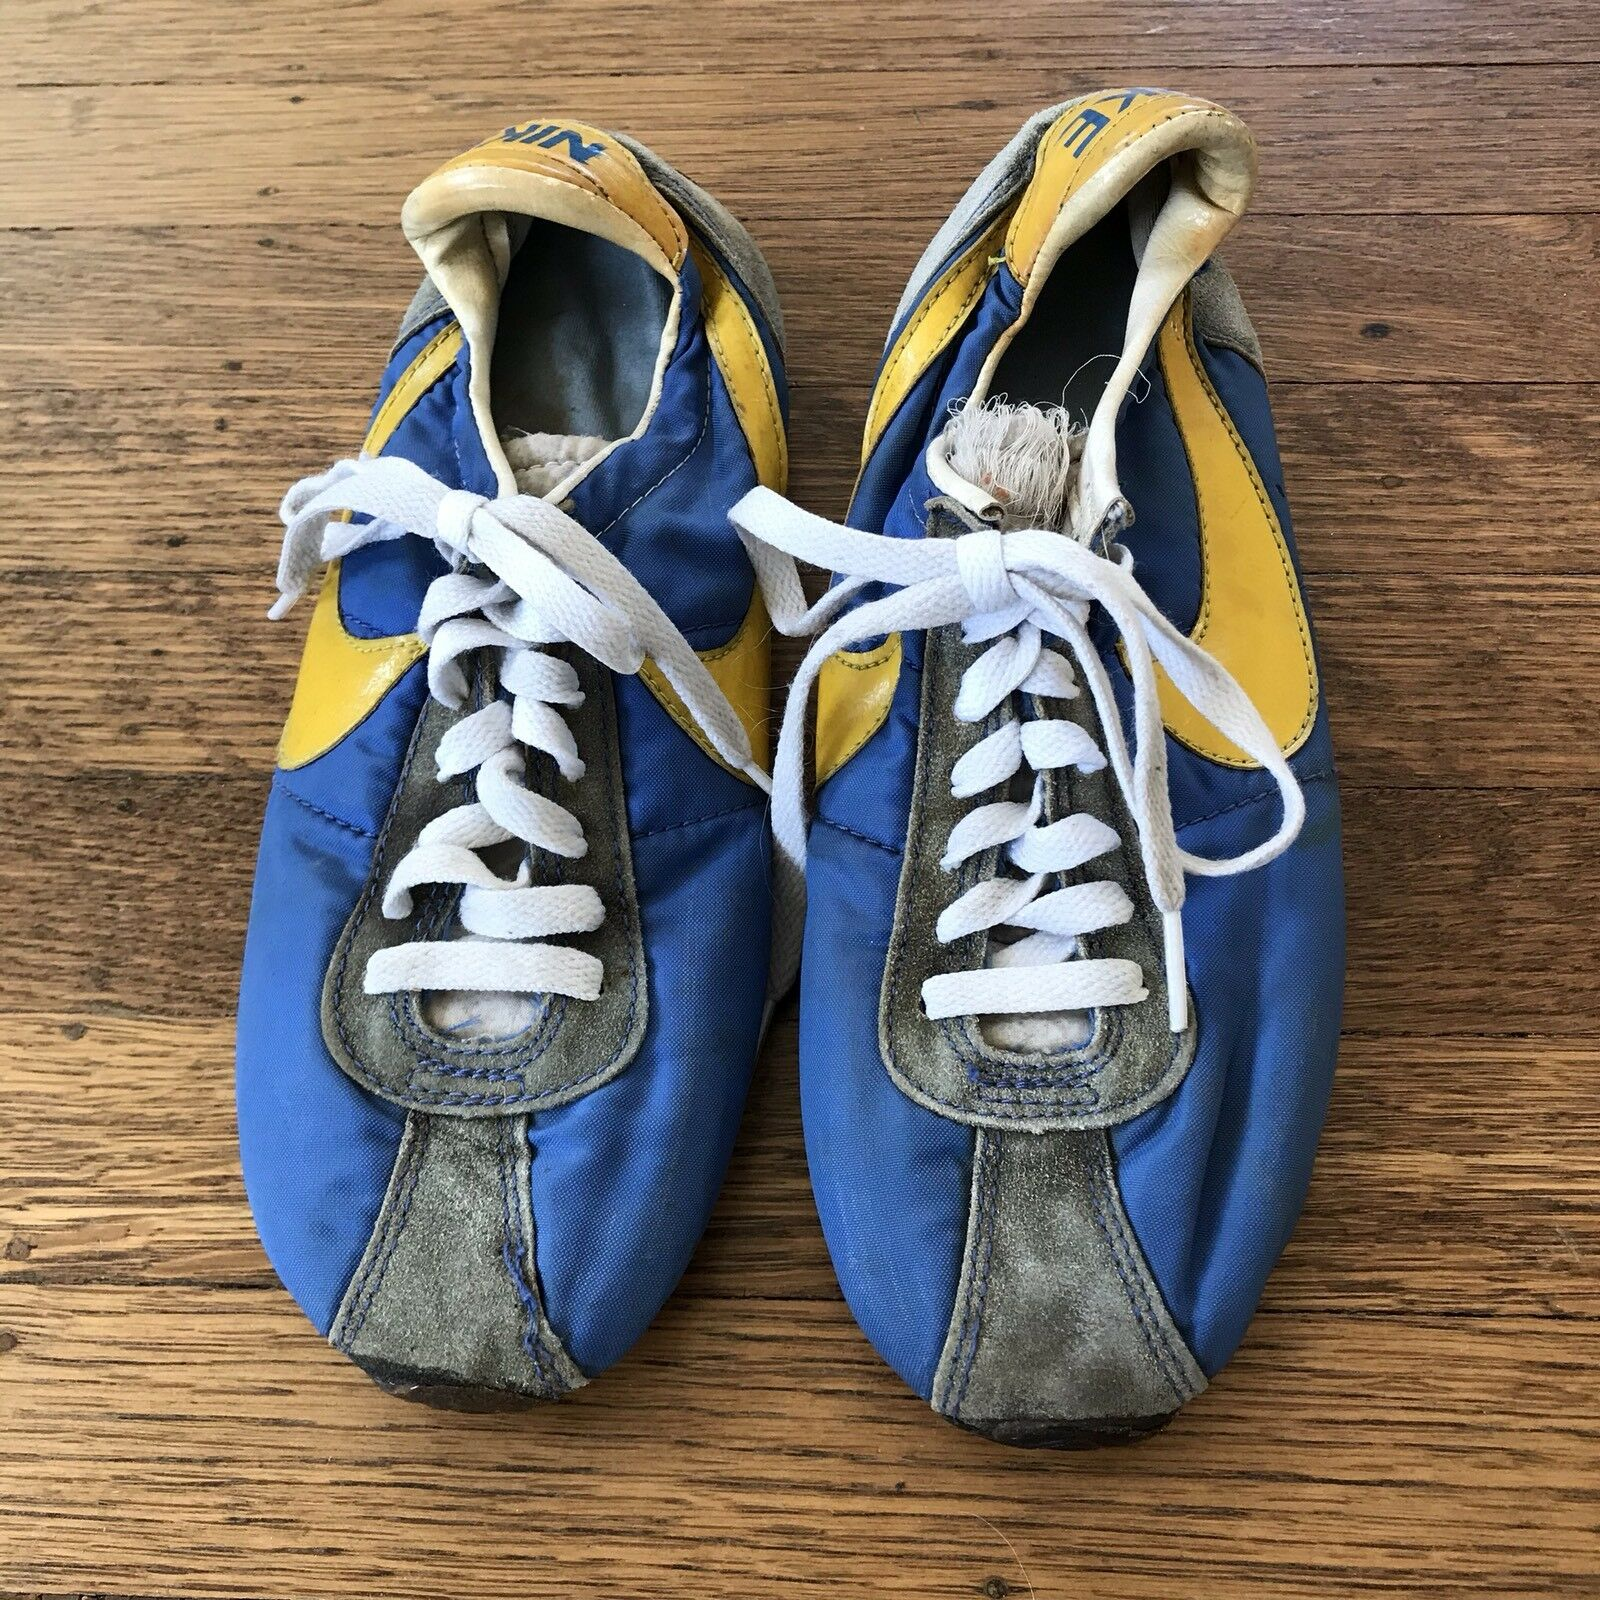 Nike Running Shoes Vintage Original Very Rare 1970's 80's Size 7 1/2 7.5